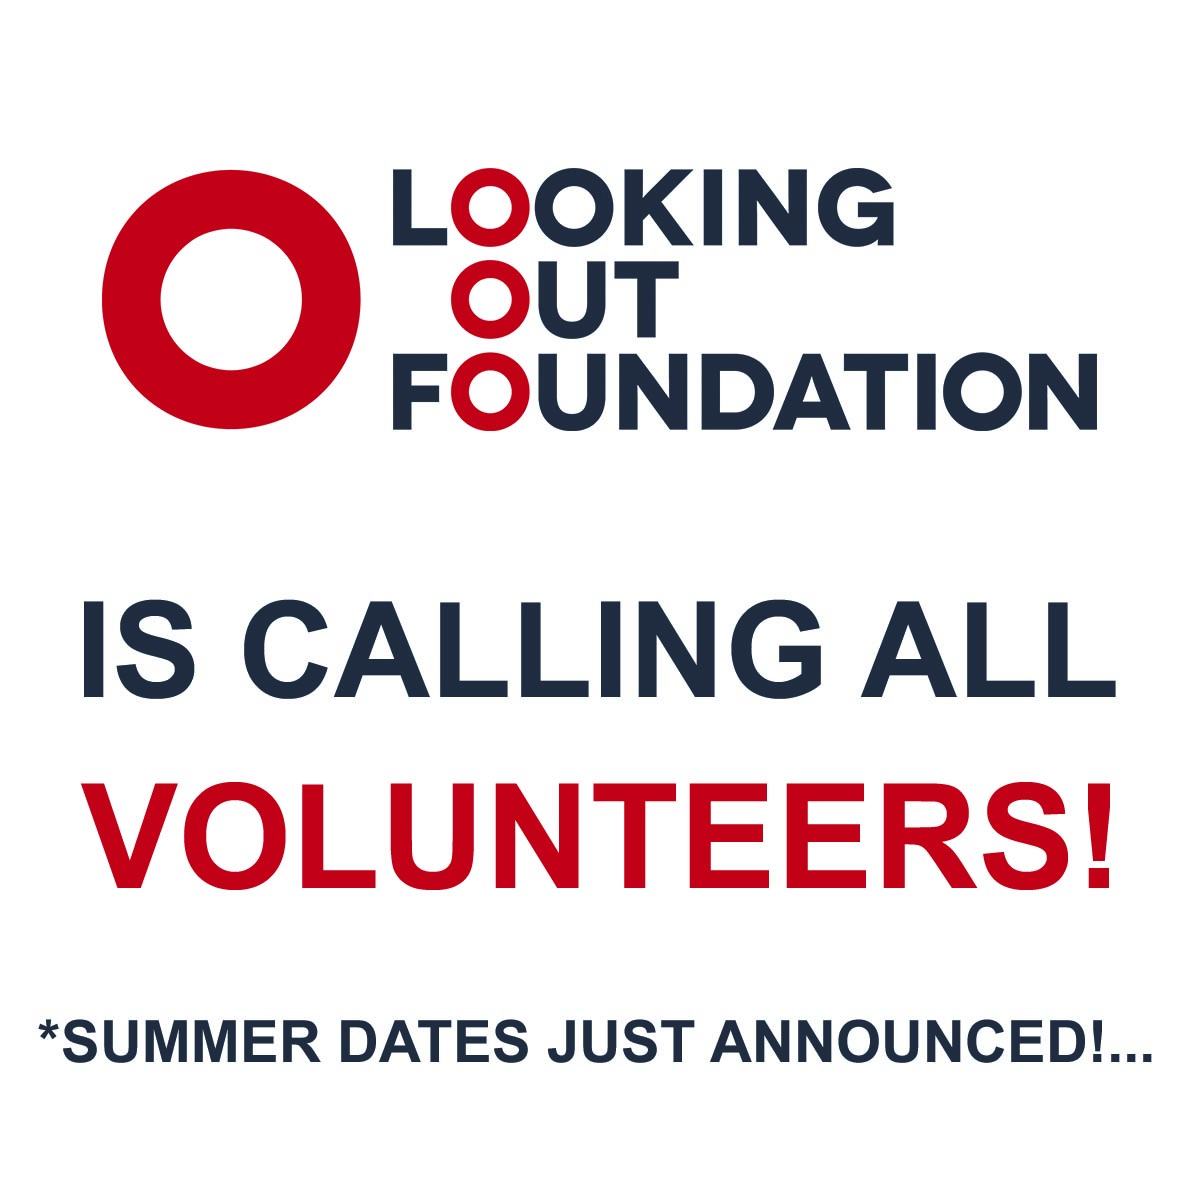 CALLING_ALL_VOLUNTEERS_summer_dates.jpg